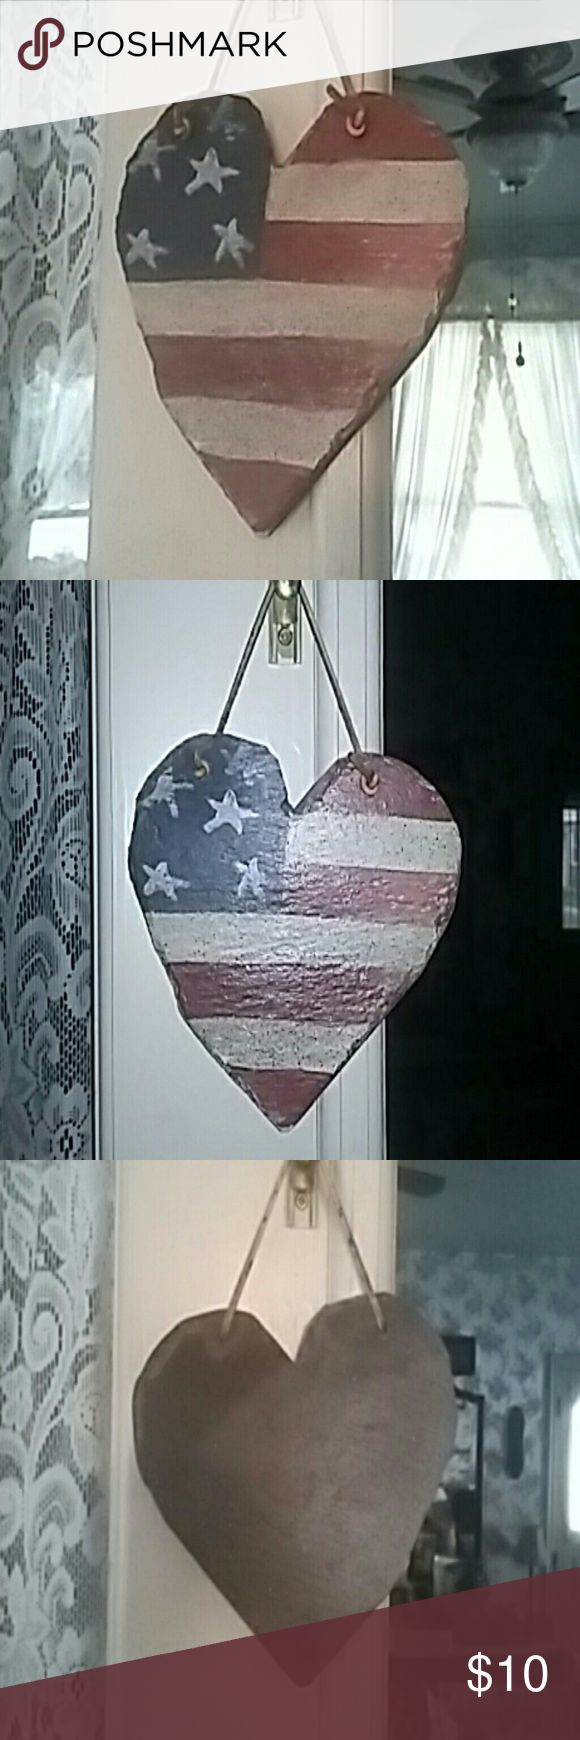 "Primitive Americana Painted Slate Heart 7.5""l × 5.75""w Primitive Americana Painted Slate Hanging Heart. The leather needs replaced. Simple fix.   Primitive  Americana  Country  Folk  Patriotic  USA  Women  Art  Home decor  Home accents  Porch  Indoor  Hanger  Wall  Outdoor  Decor Flag Other"